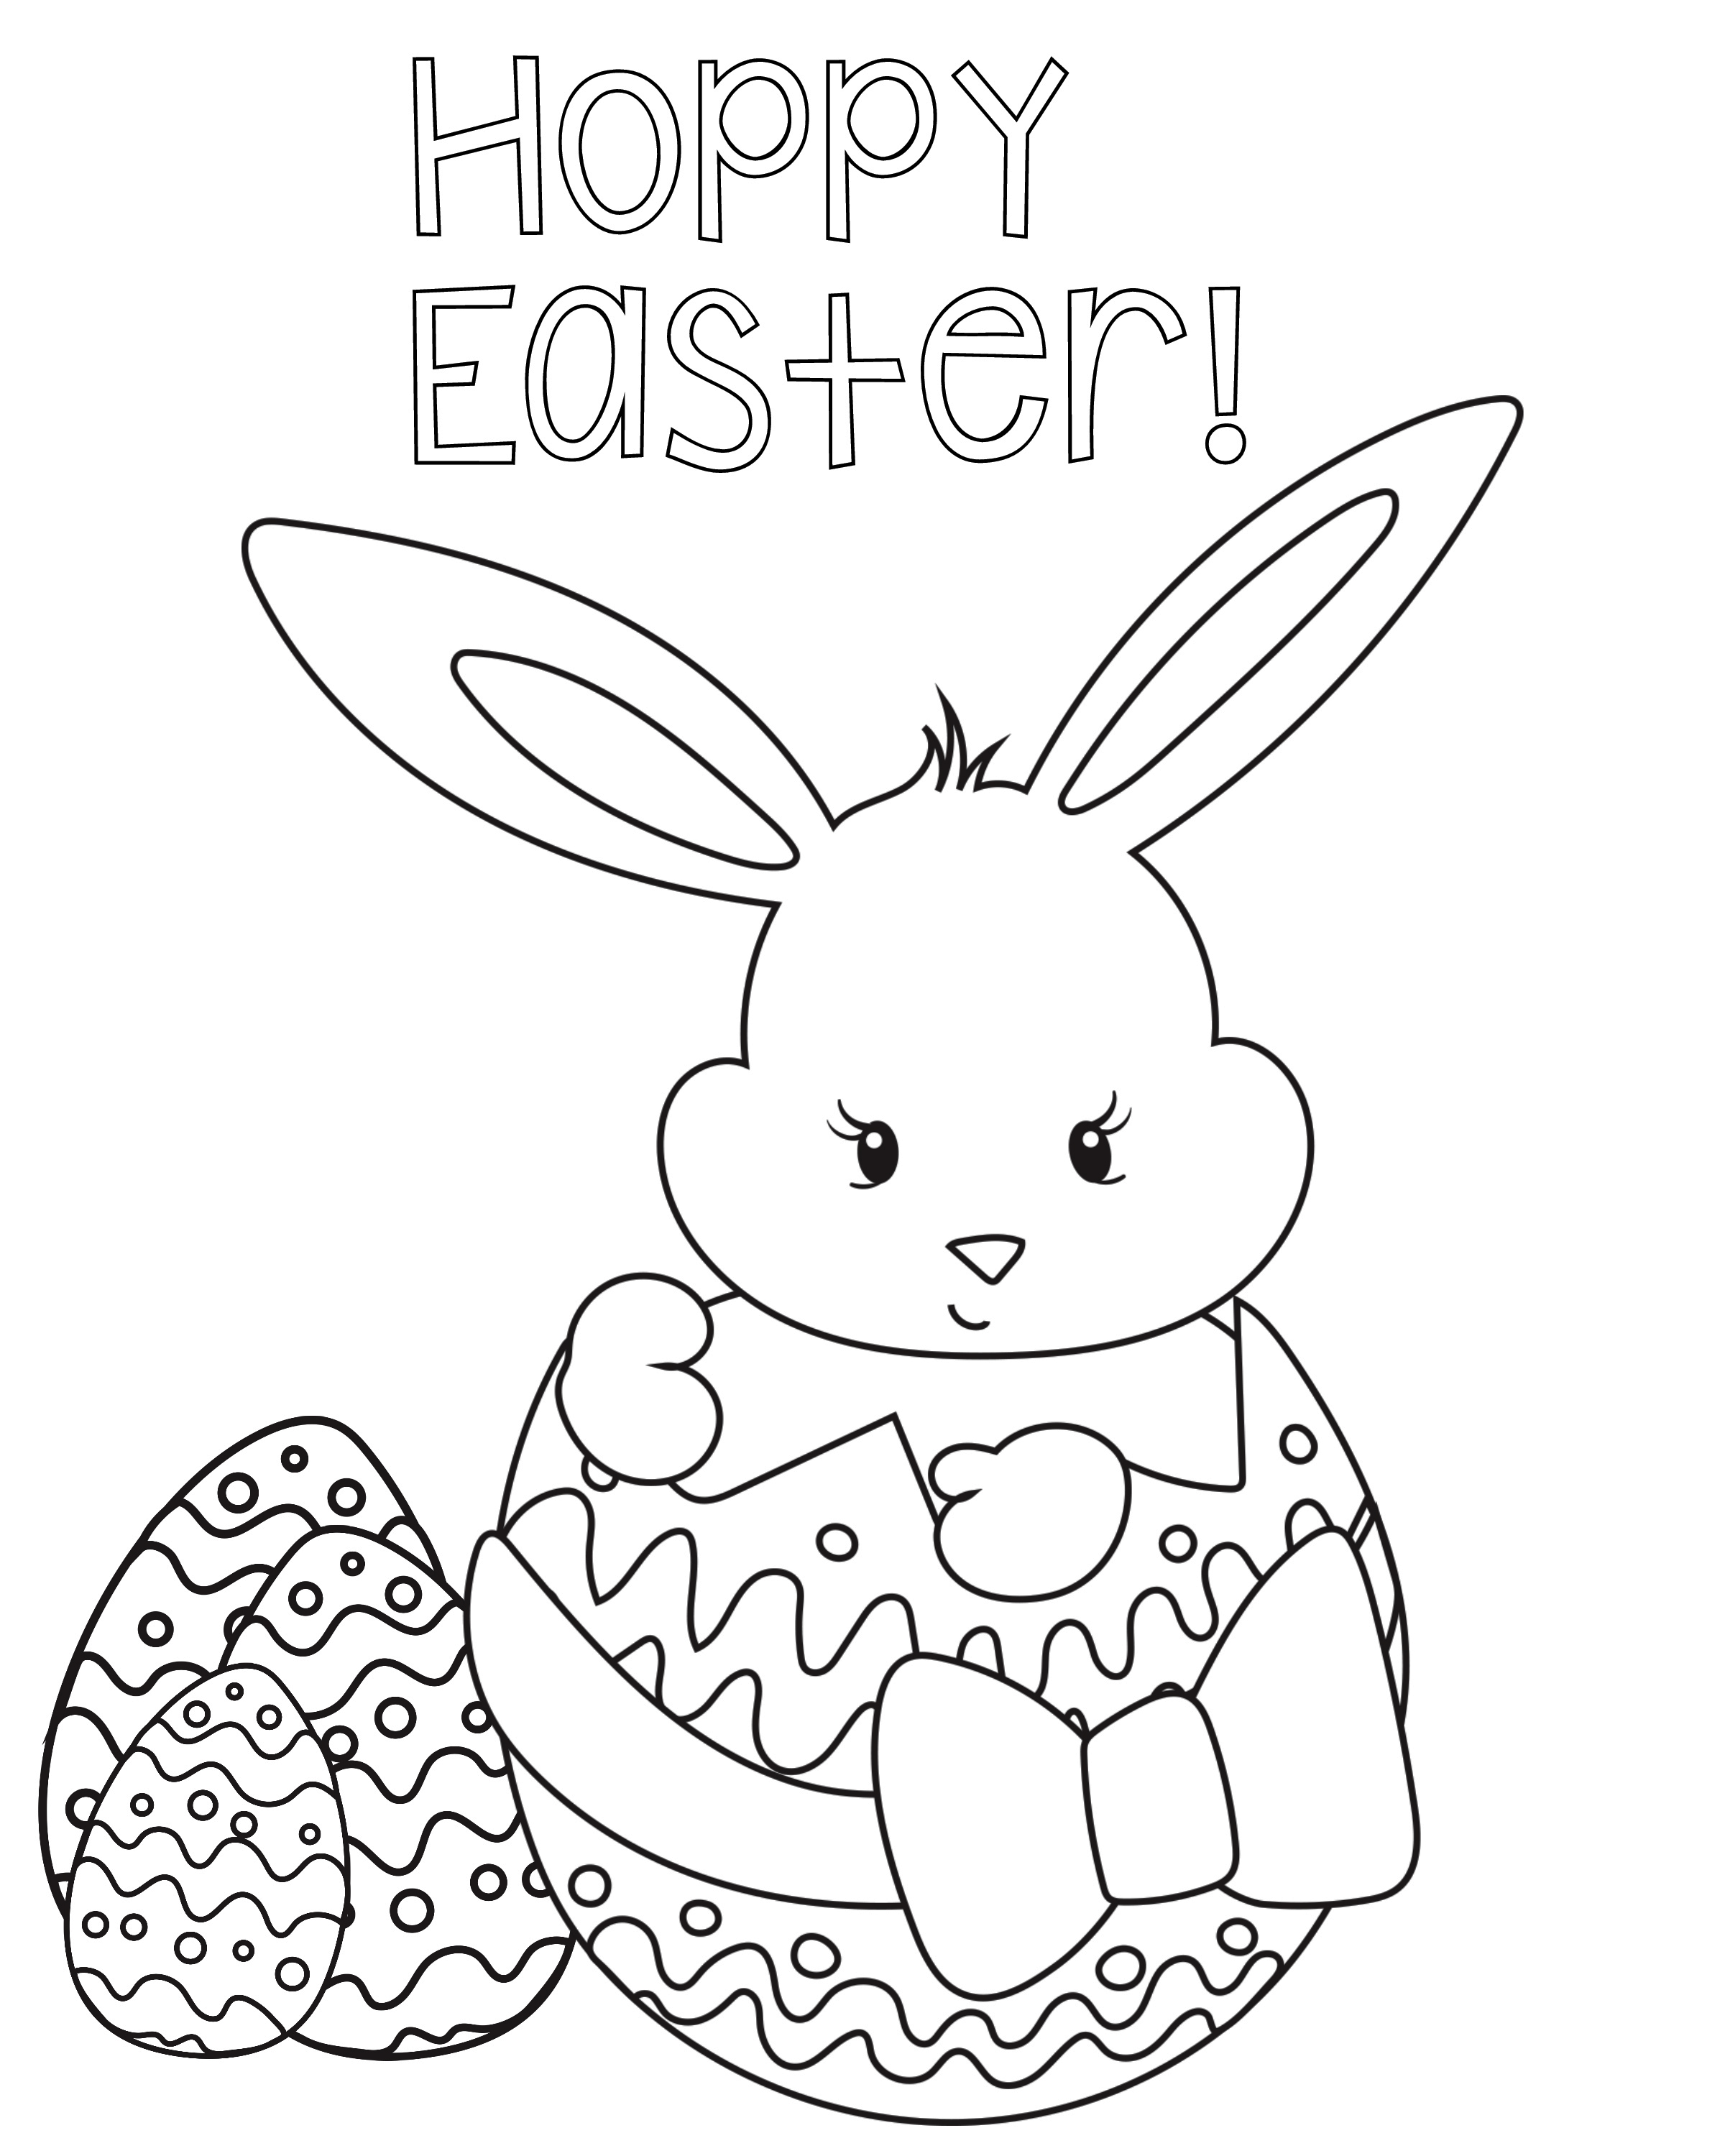 free printable easter coloring pages free printable easter coloring pages easter freebies between the kids printable pages free coloring easter